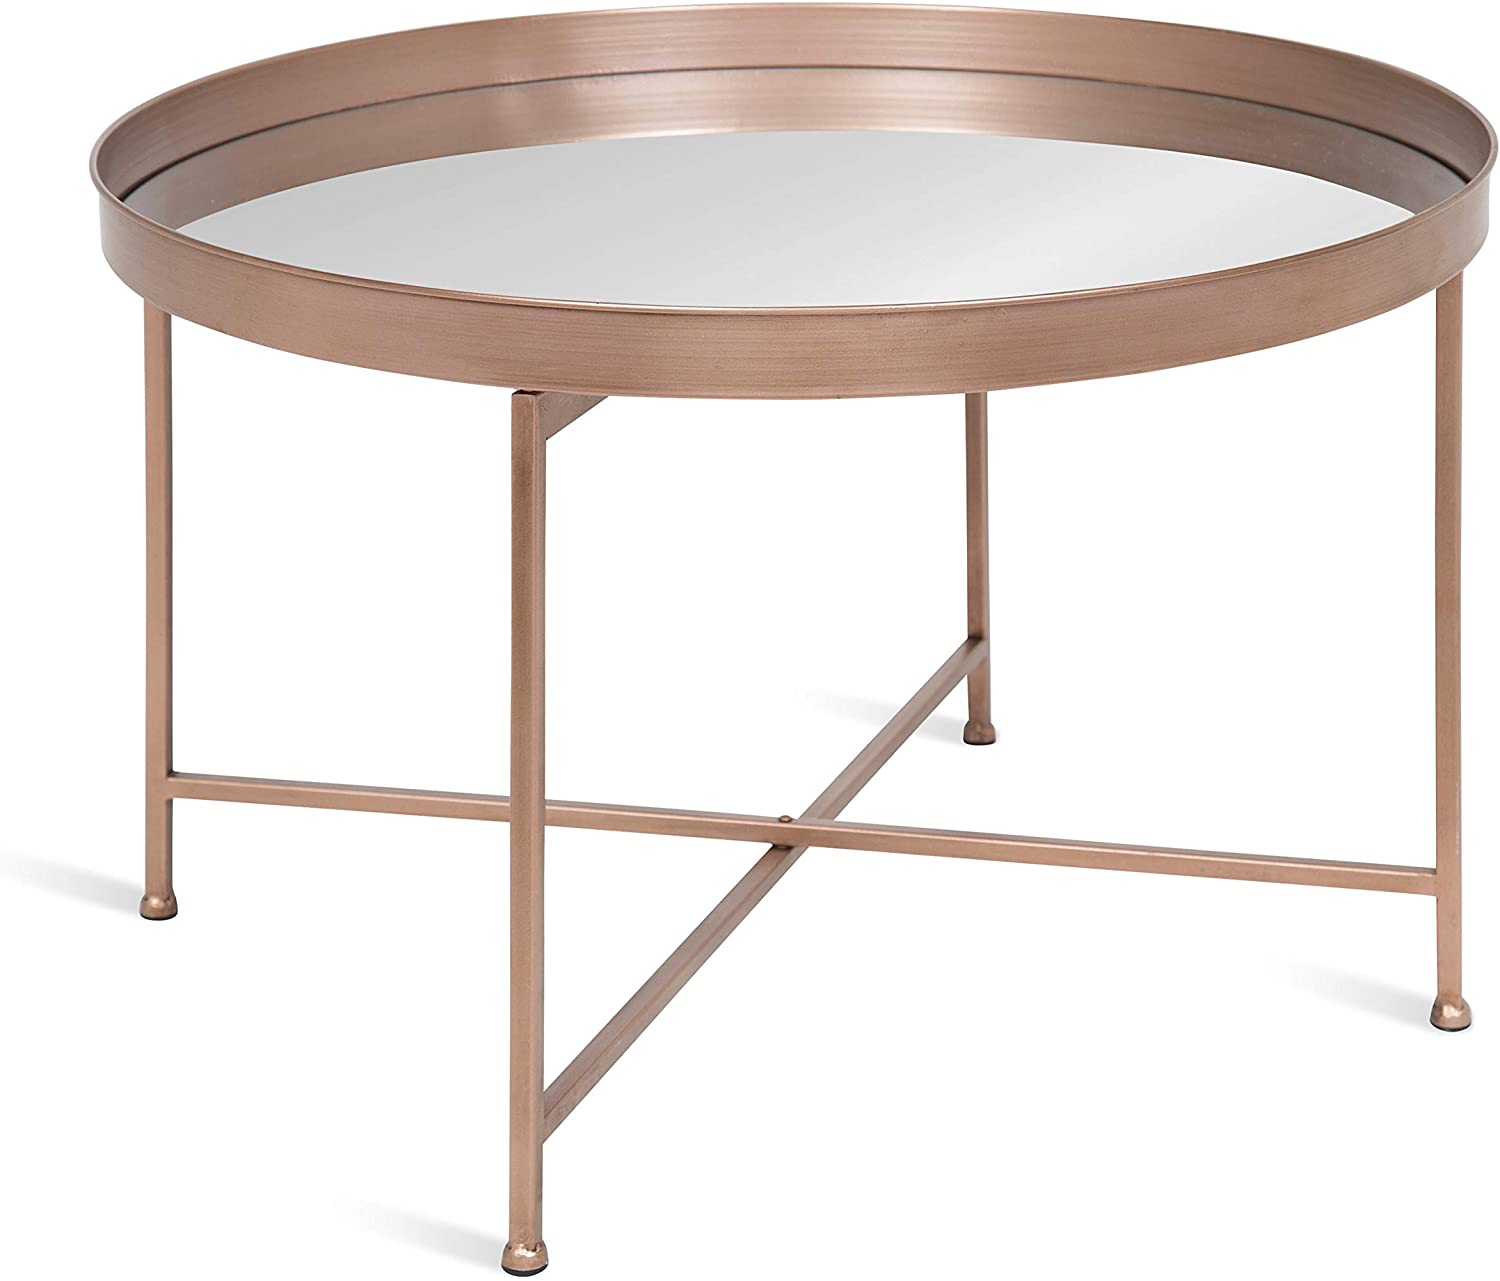 """Kate and Laurel Celia Metal Foldable Round Accent Coffee Table, 28.25"""" x 28.25"""" x 19"""", Mirrored Surface and Rose Gold Frame, Modern Minimalist Design and Detachable Magnetic Tabletop"""